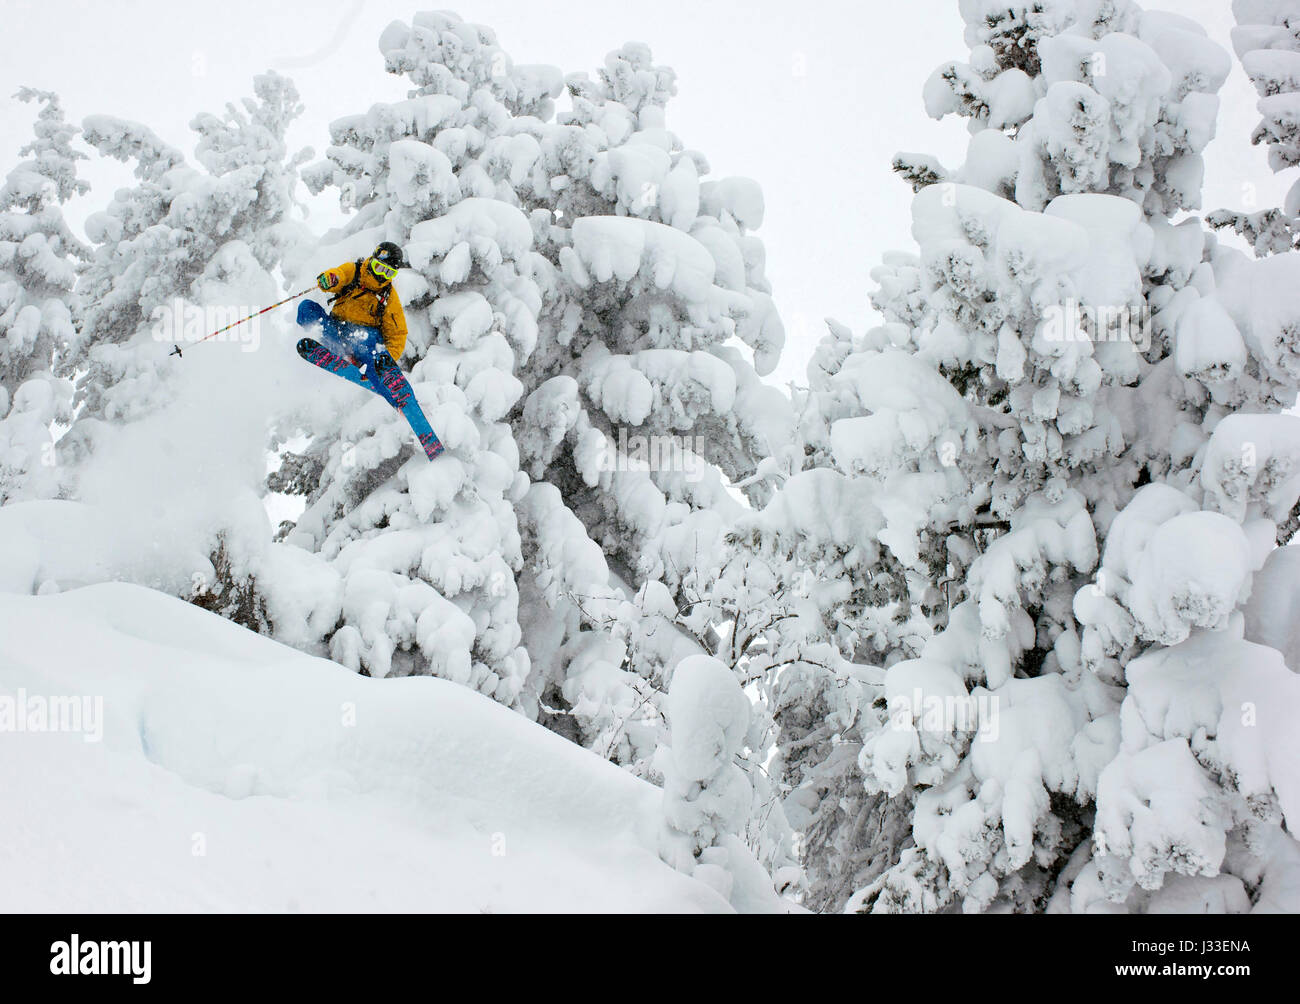 Skifahrer jumping through the deeply snowed in forest, Kaltenbach, Zillertal, Austria - Stock Image